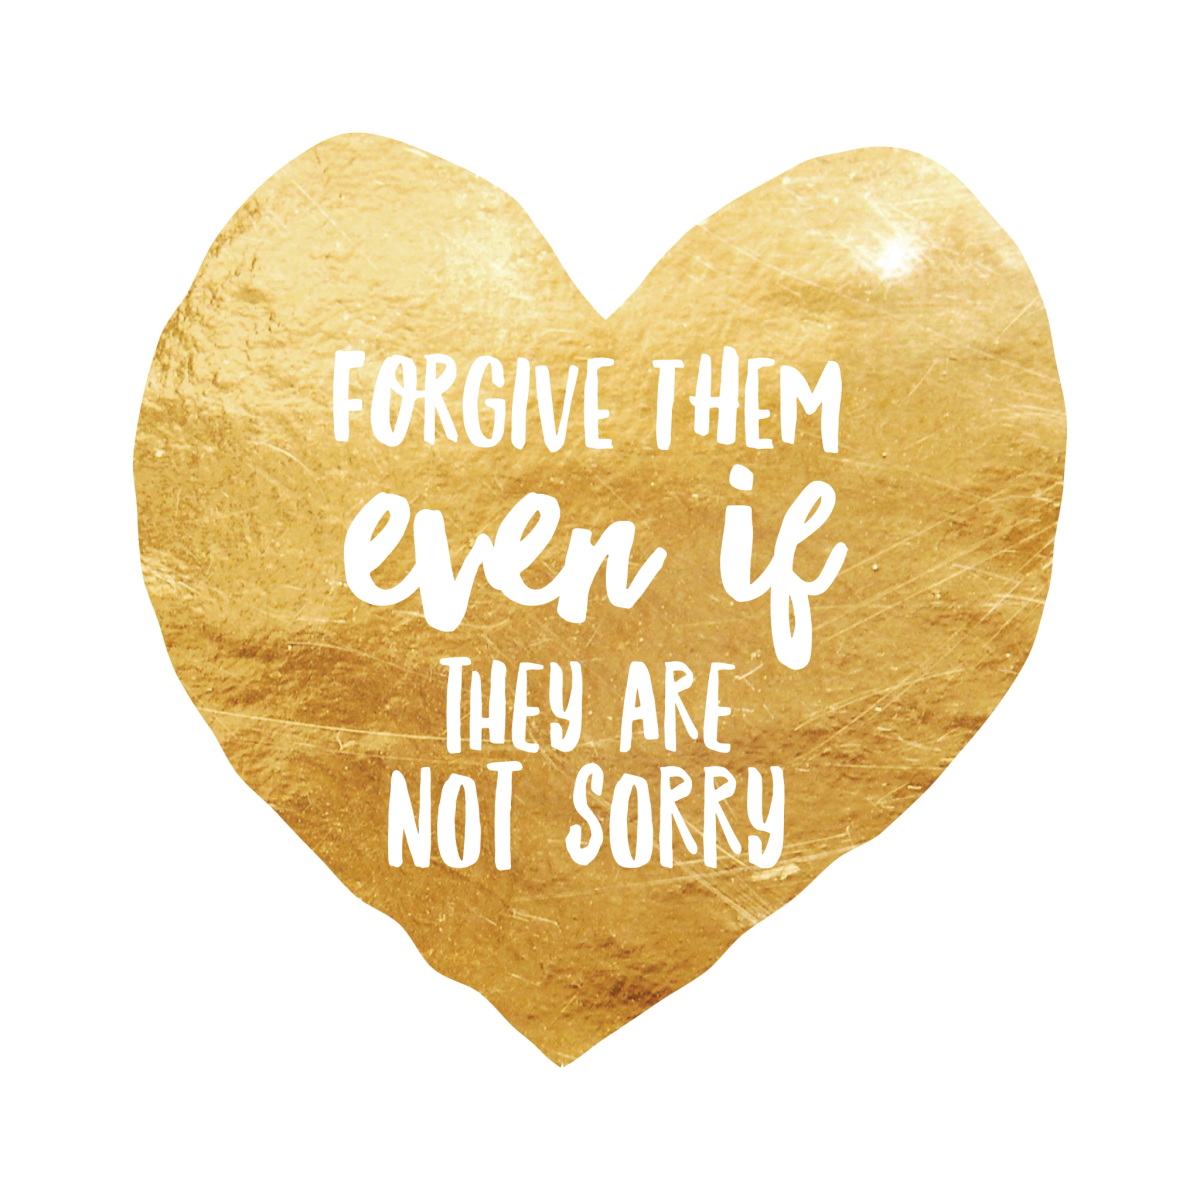 """Forgive them even if they are not sorry""… a valuable life lesson to learn"